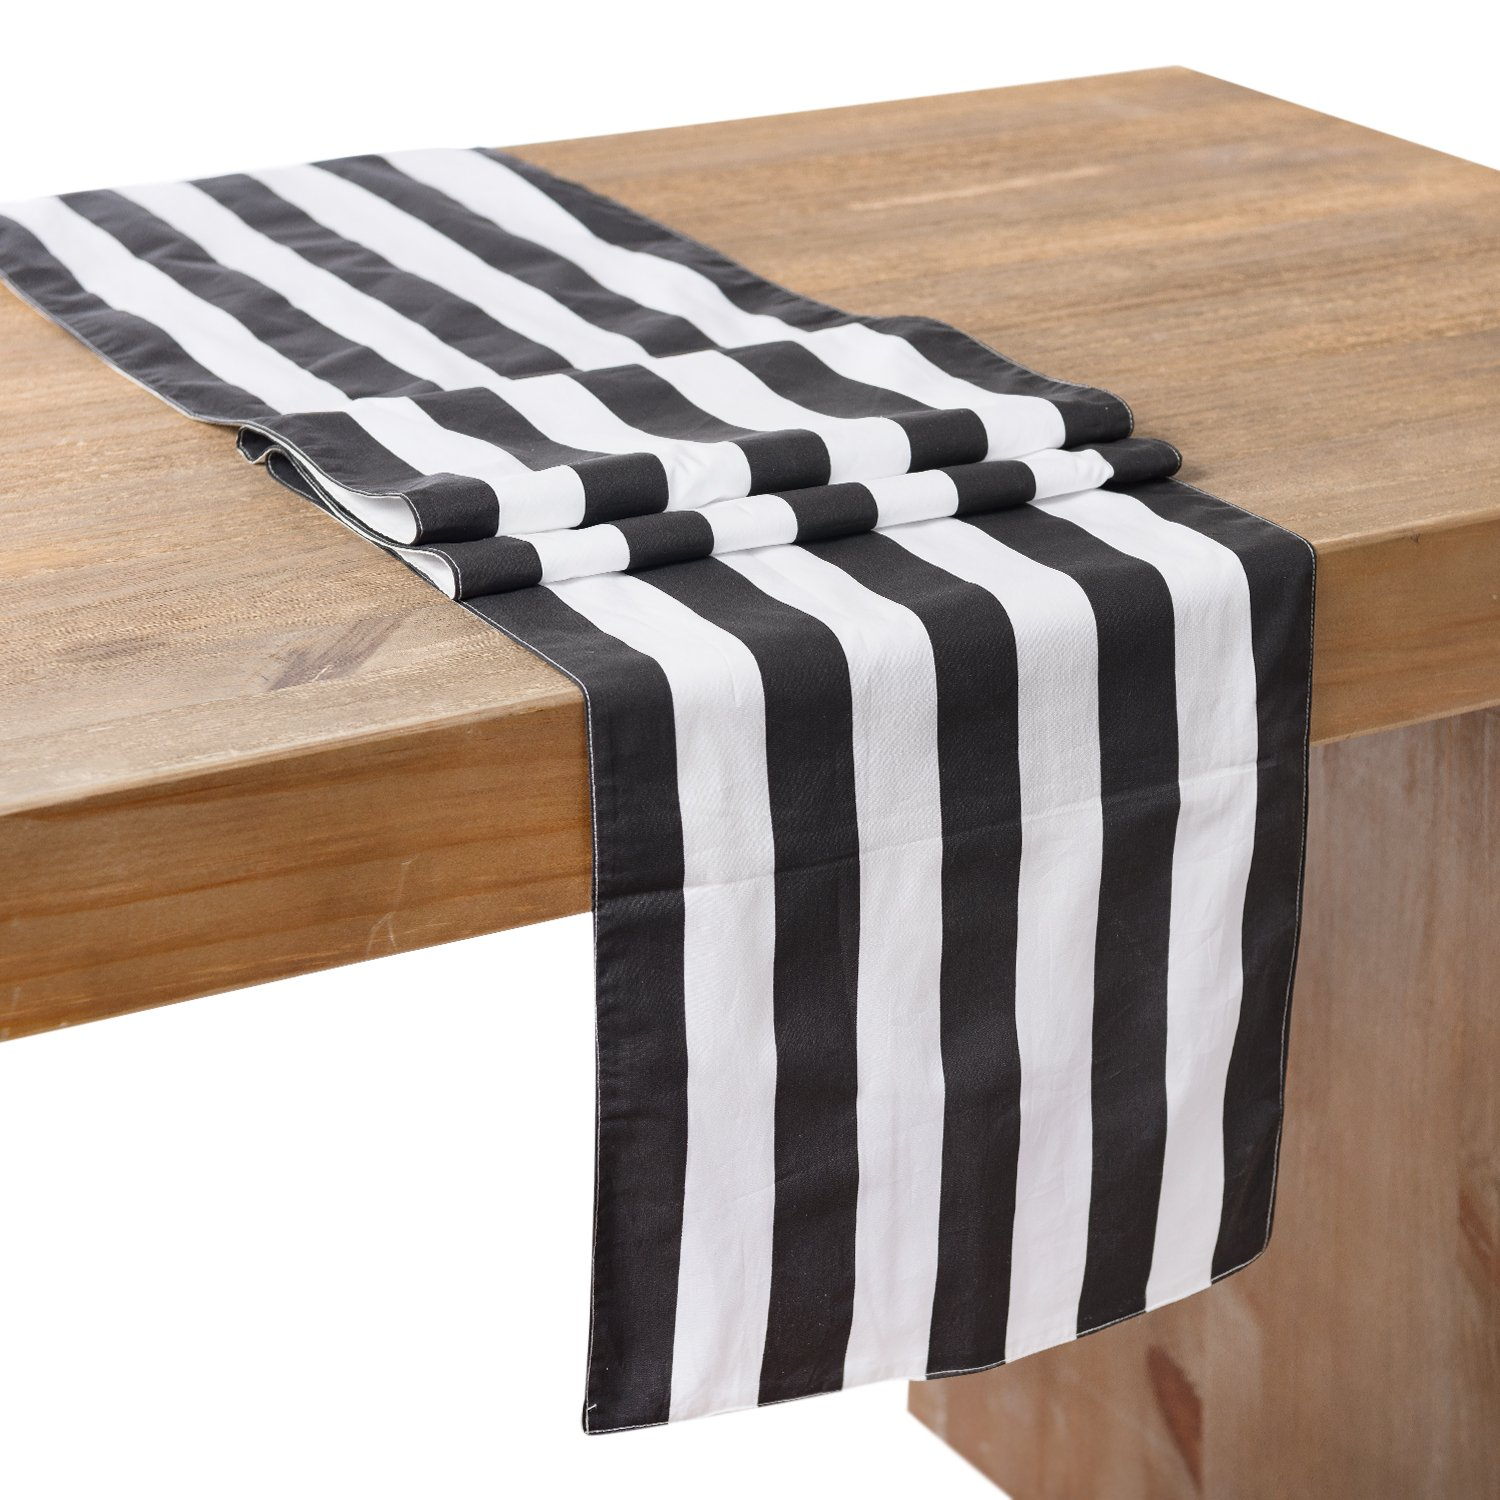 Ling's moment Classic 1 Inch Black and White Striped Table Runner, 12 x 72 Inches, 100% Cotton Machine Washable Colorfast